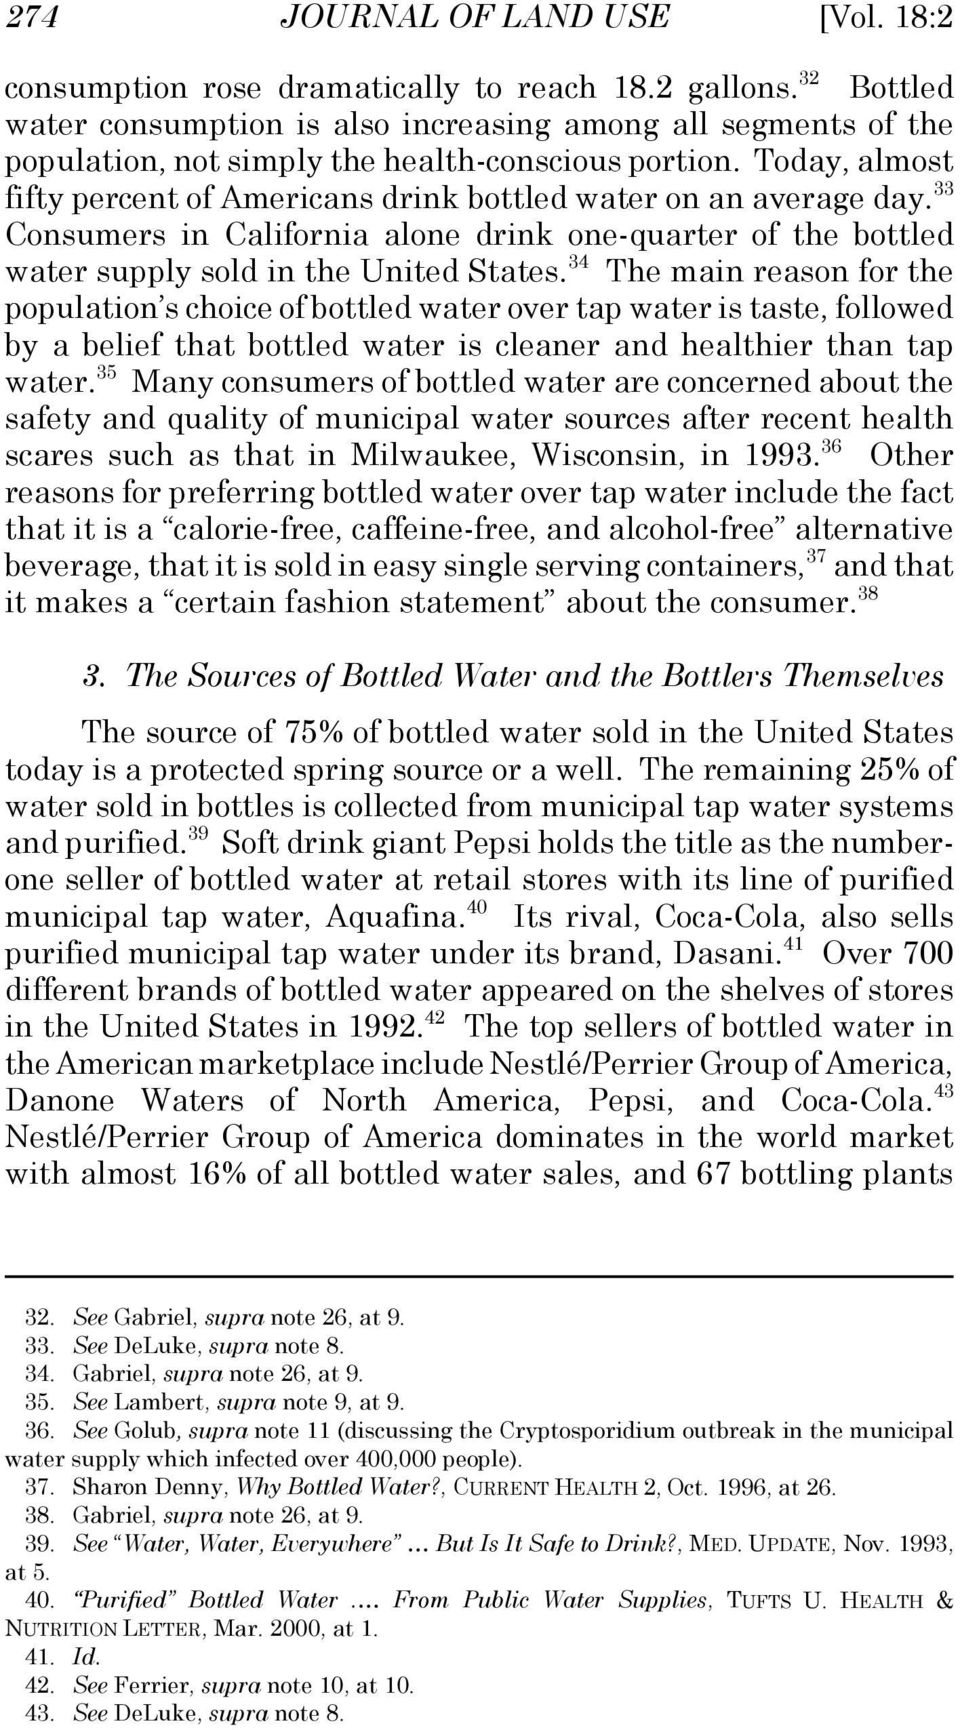 Today, almost fifty percent of Americans drink bottled water on an average day. 33 Consumers in California alone drink one-quarter of the bottled water supply sold in the United States.